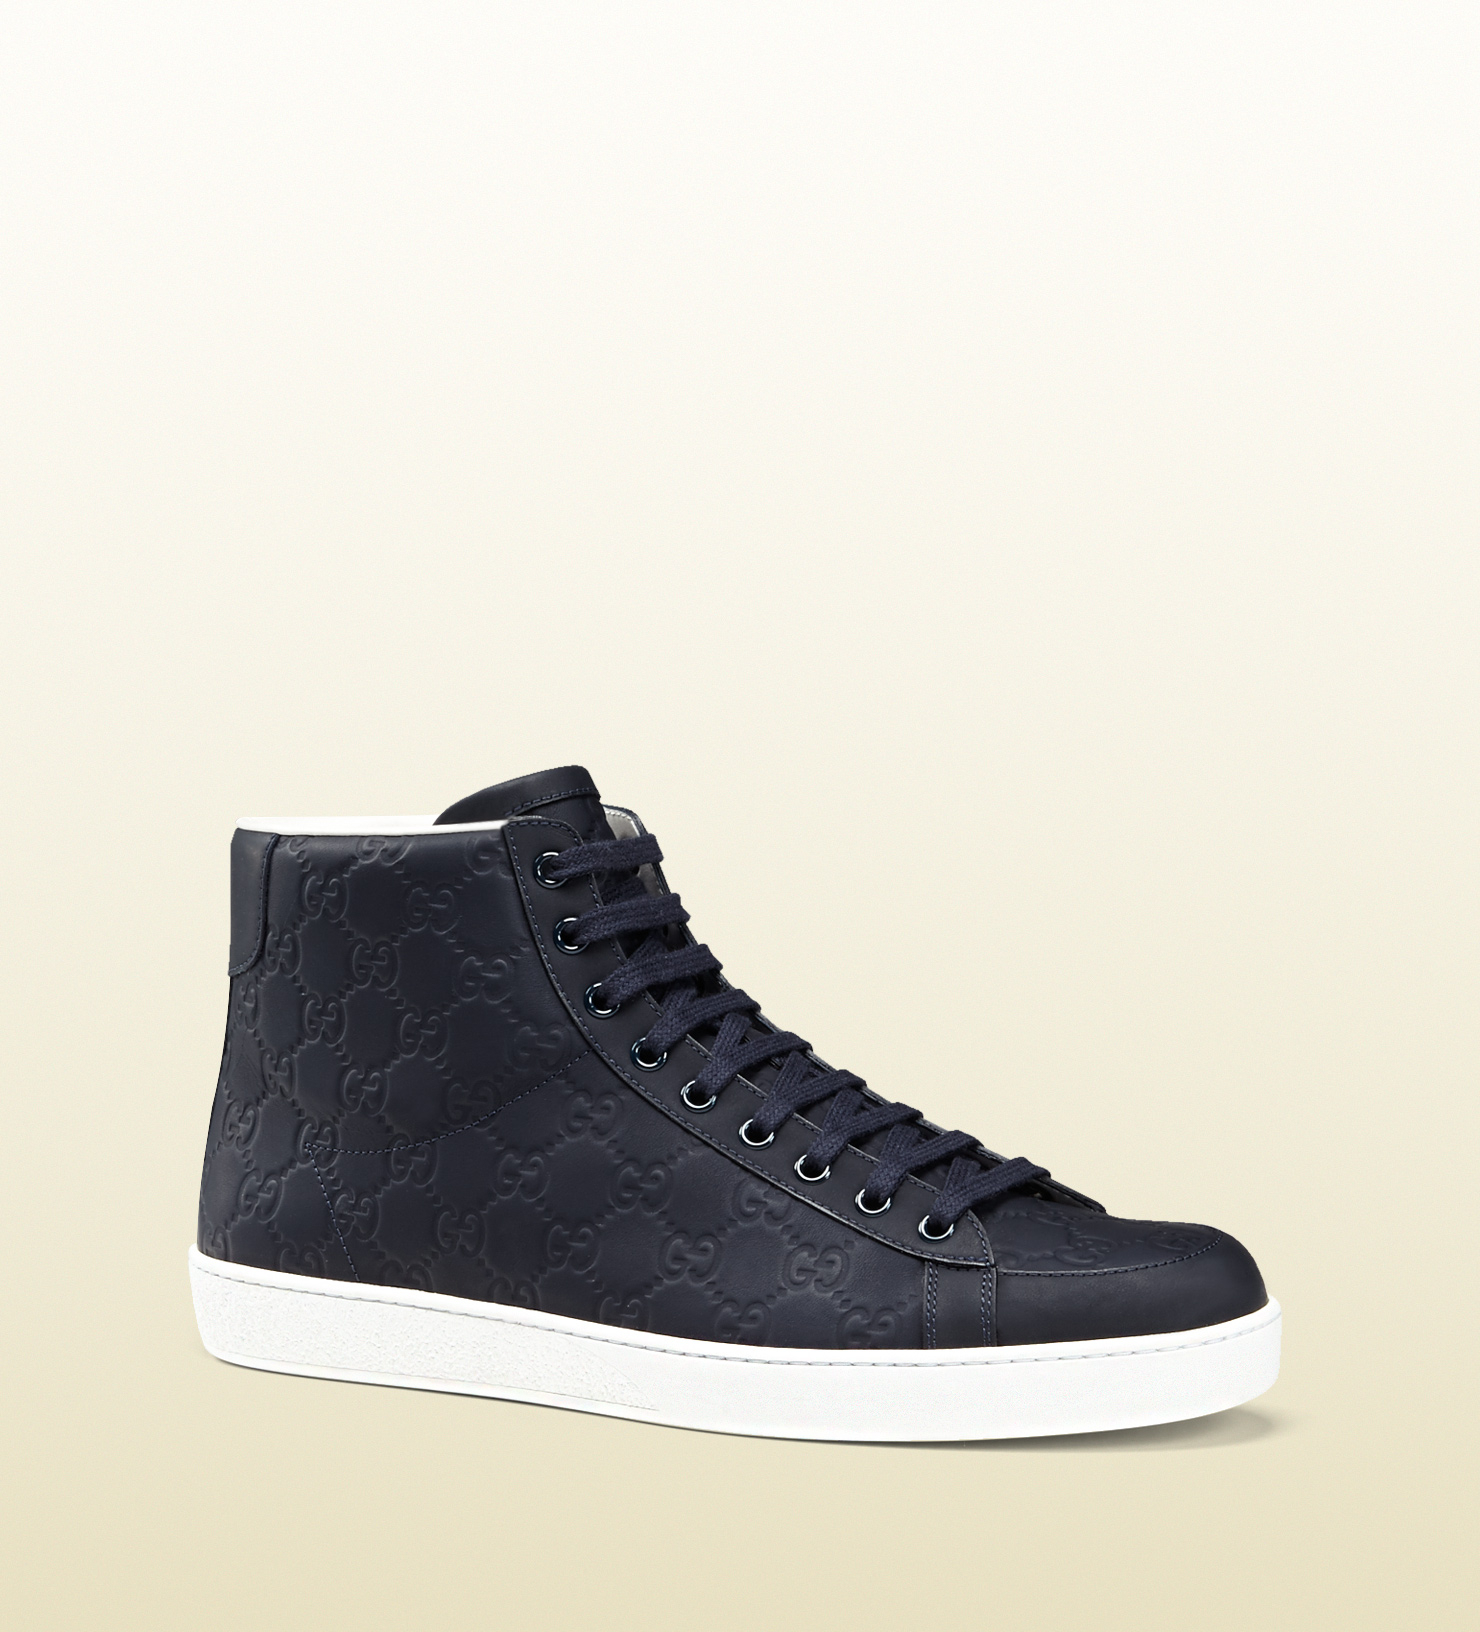 gucci rubberized leather high top sneaker in blue for men. Black Bedroom Furniture Sets. Home Design Ideas